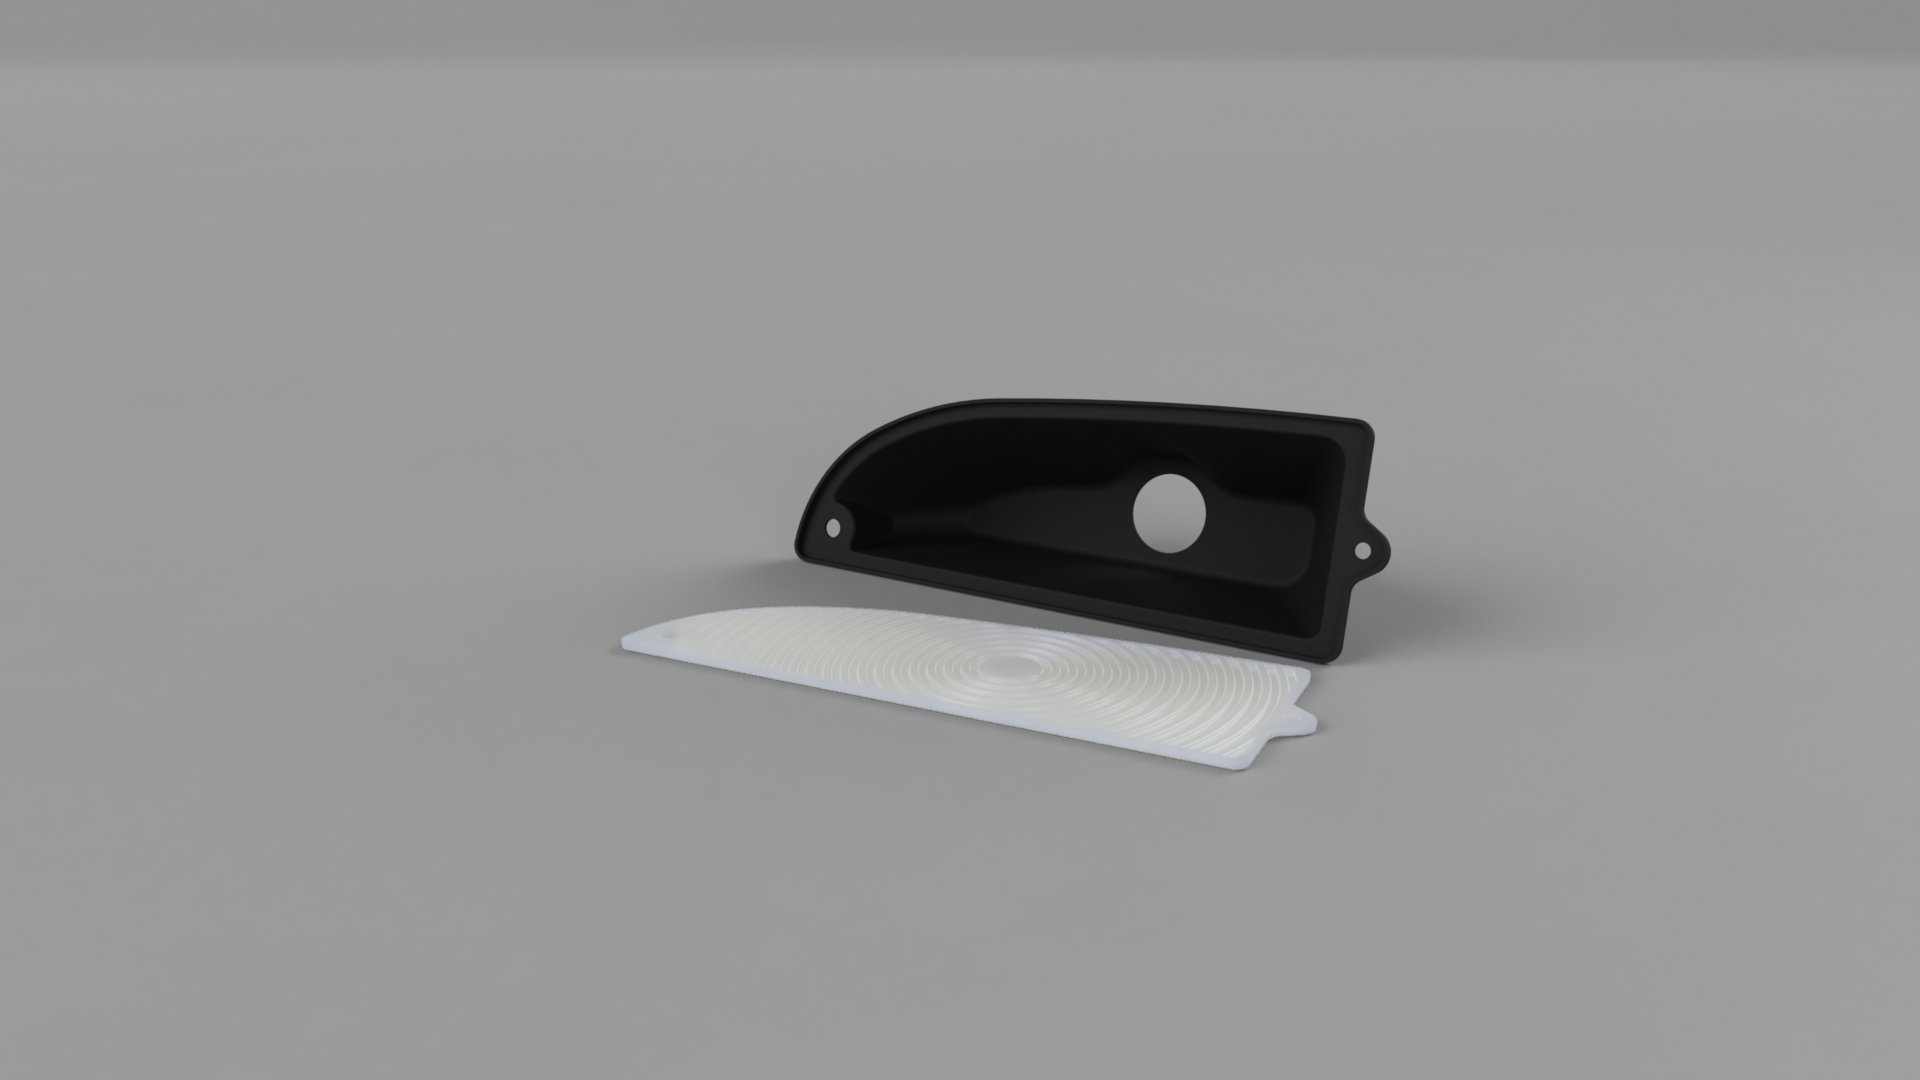 DimensionAlley Creates 3D Printed Parts for Car Restoration - My